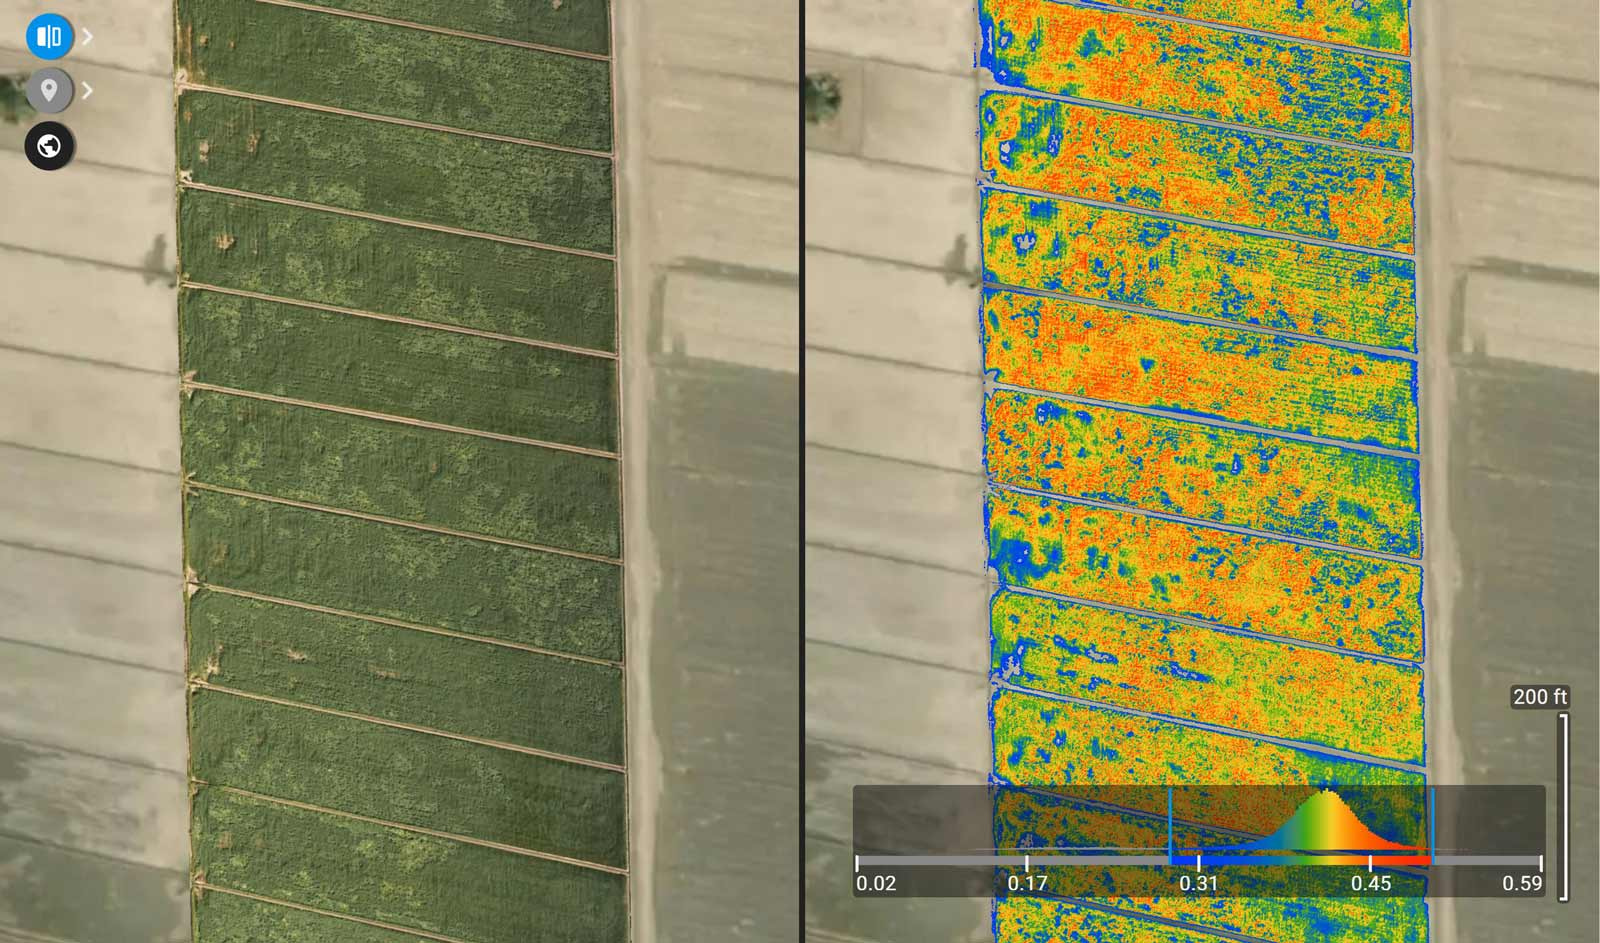 Comparison of the orthomosaic and NDRE vegetation index maps in Pix4Dfields